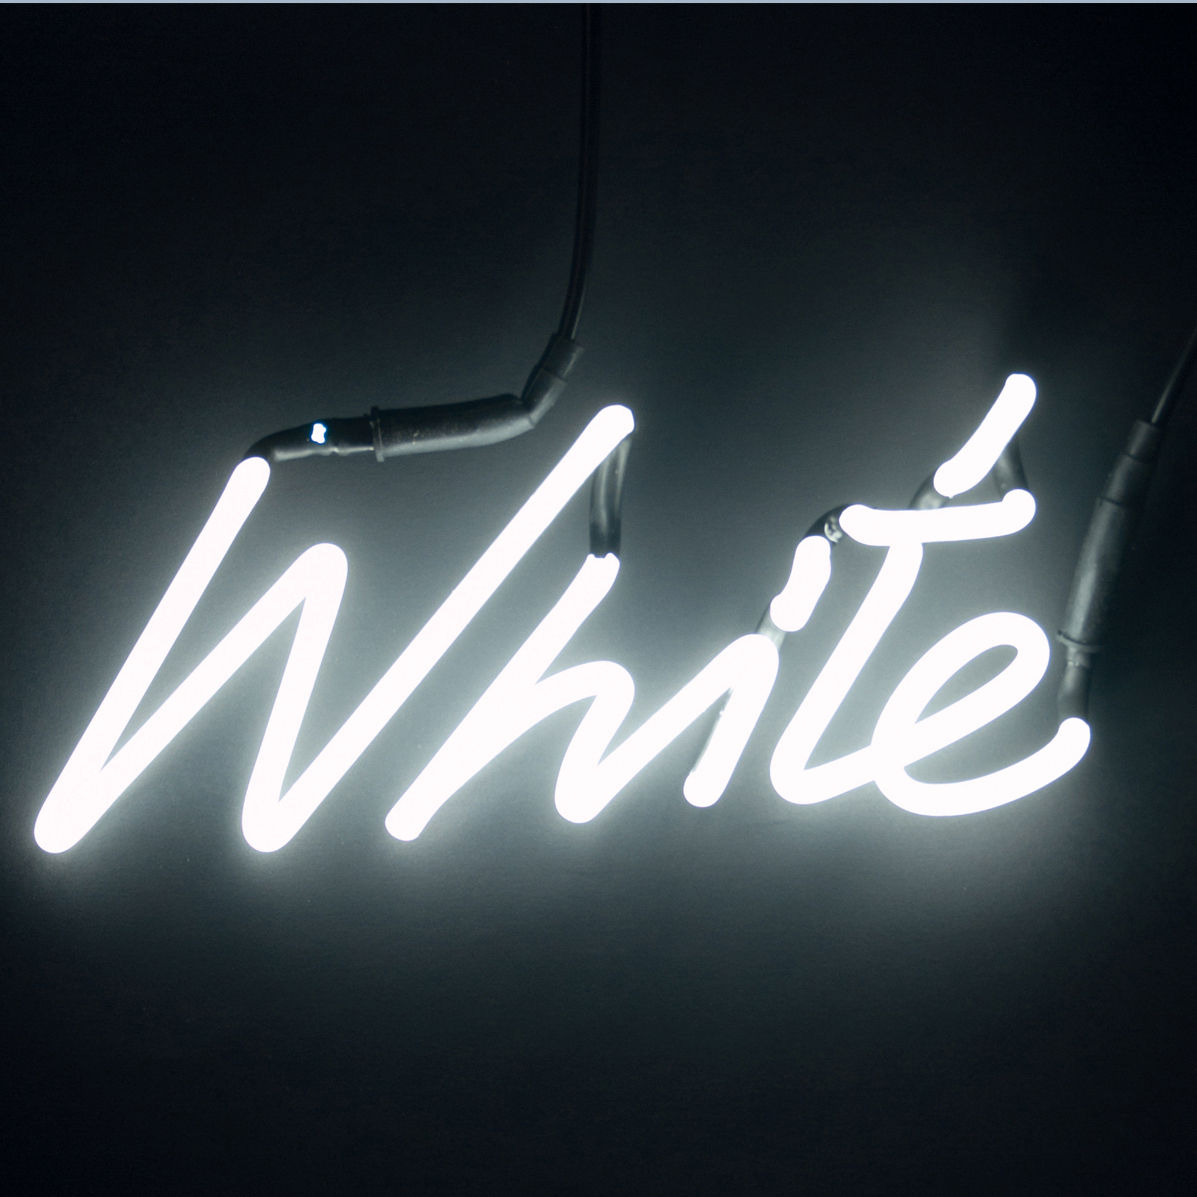 Neon Lights For Wall : Neon Shades White Wall light White by Seletti